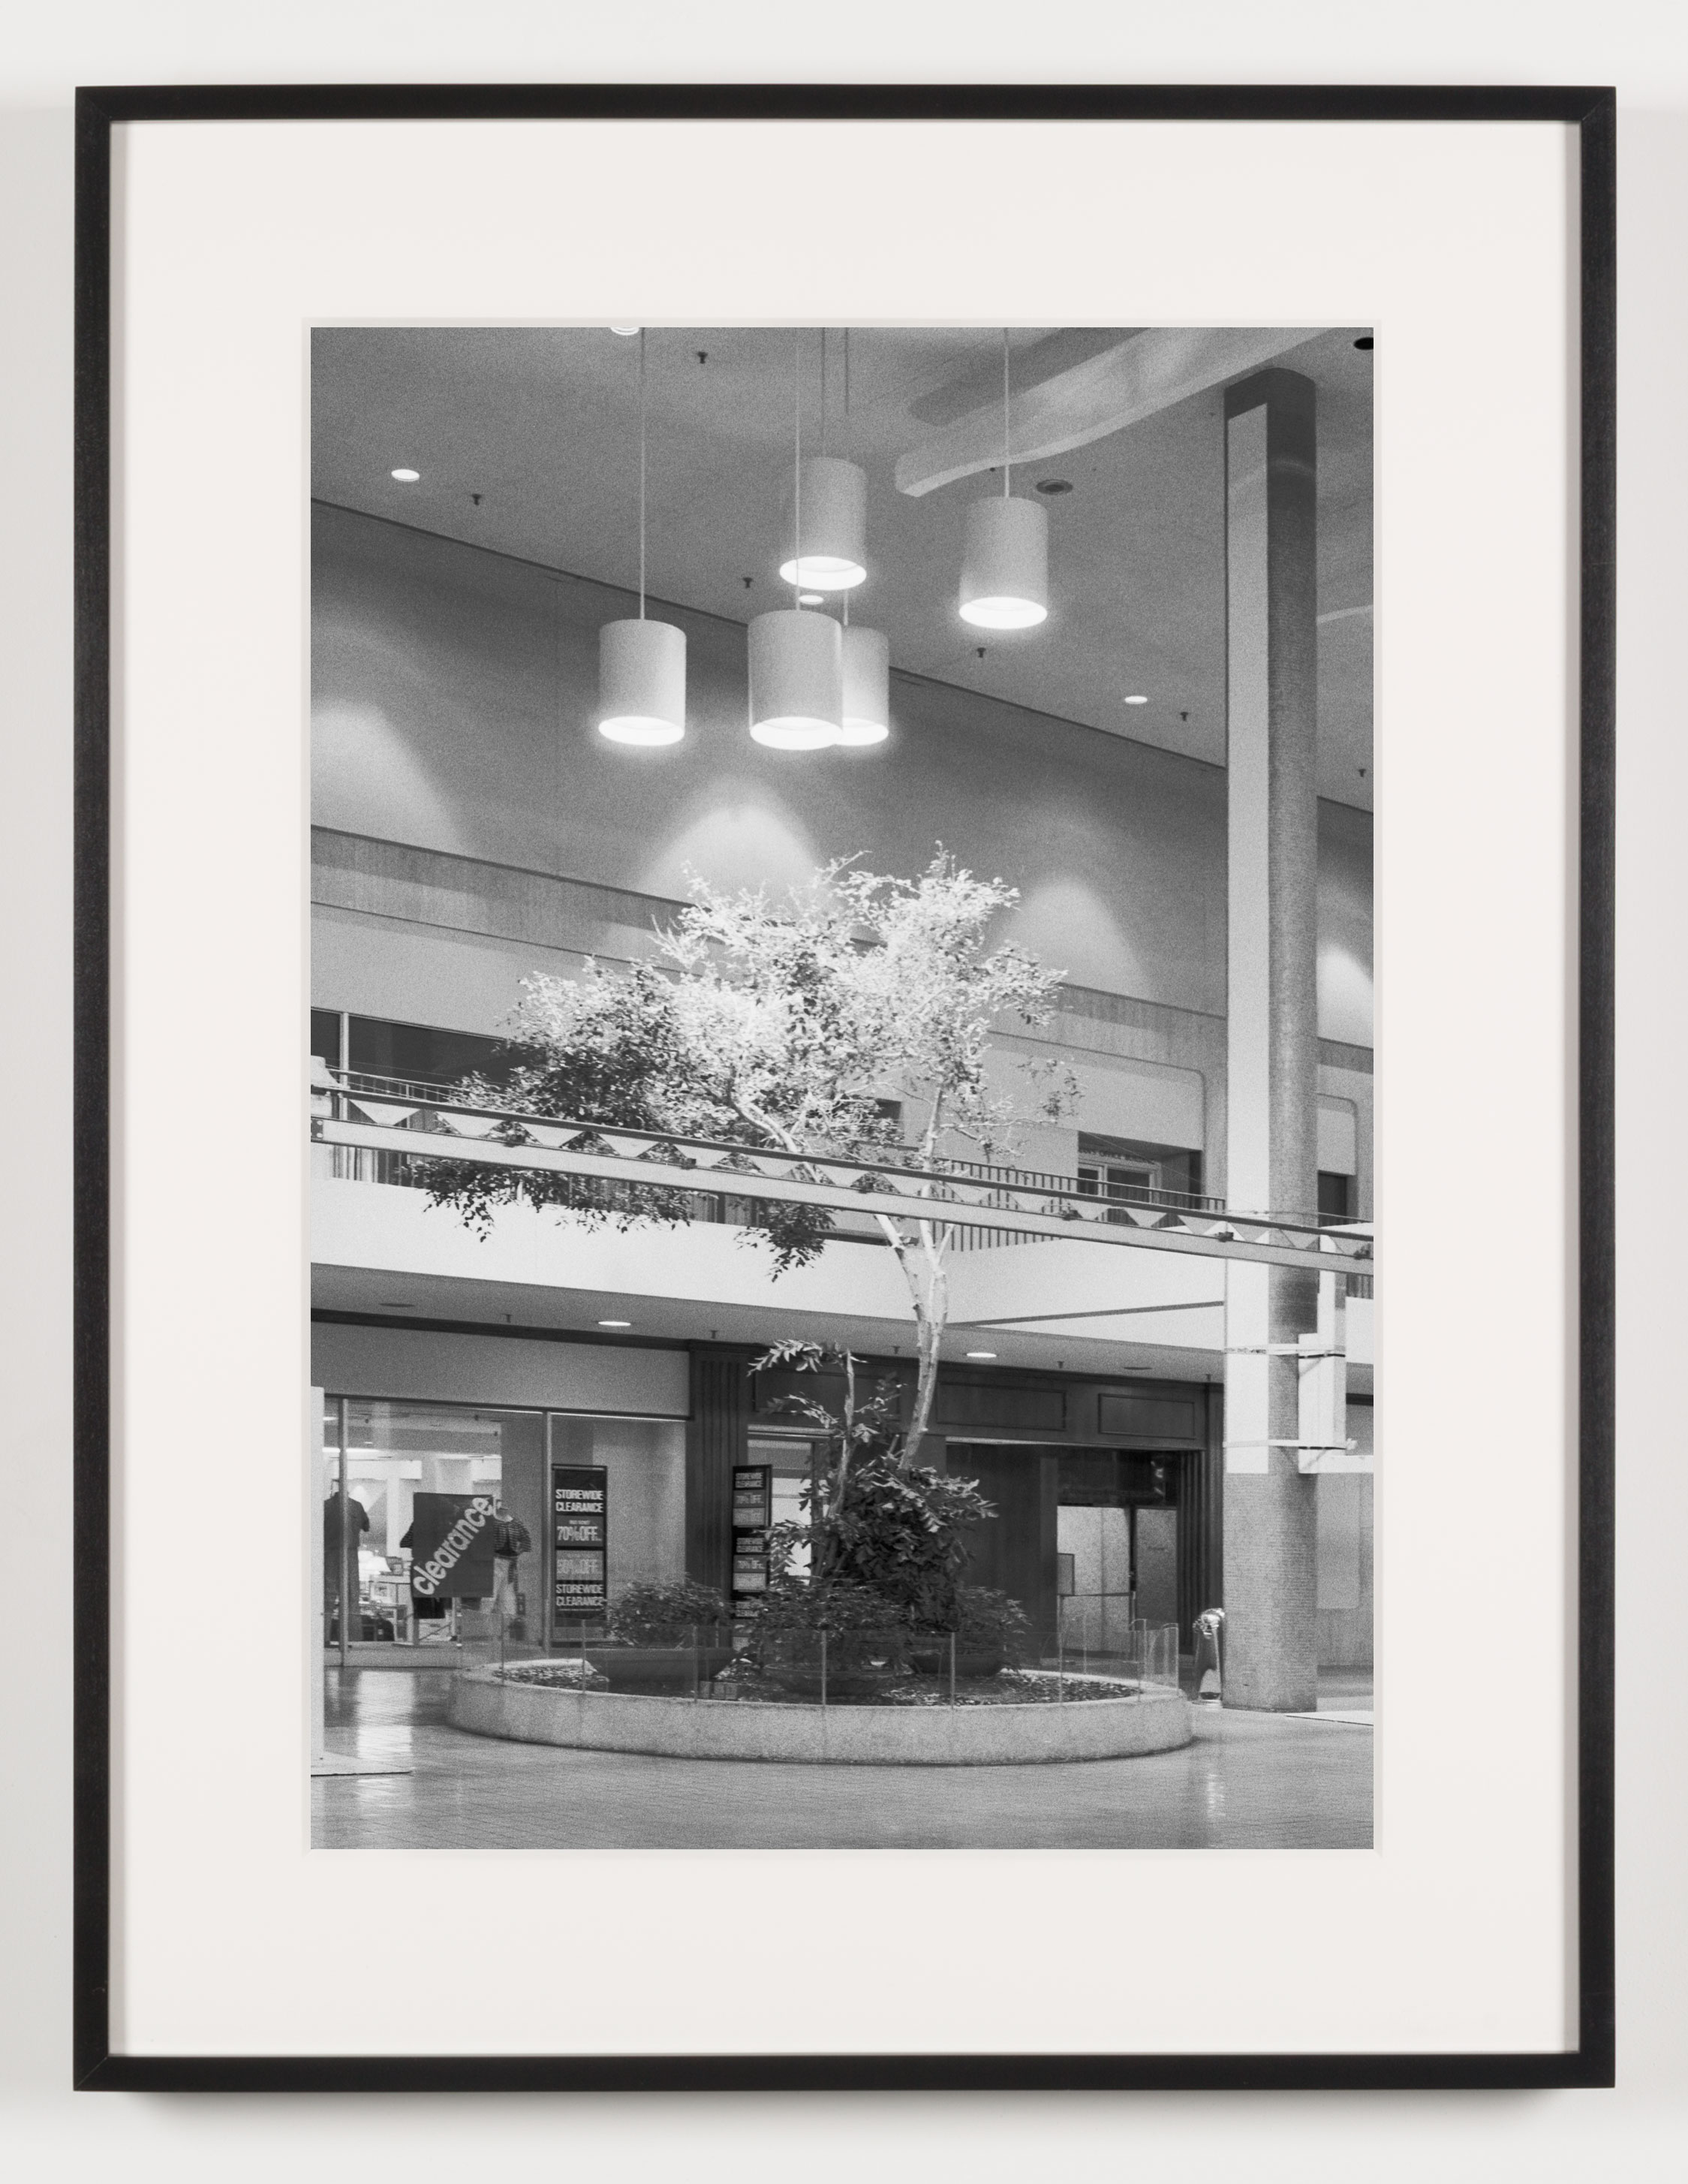 Midtown Plaza (View of Central Plaza), Rochester, NY, Est. 1962, Demo. 2010   2011  Epson Ultrachrome K3 archival ink jet print on Hahnemühle Photo Rag paper  21 5/8 x 28 1/8 inches   American Passages, 2001–2011    A Diagram of Forces, 2011